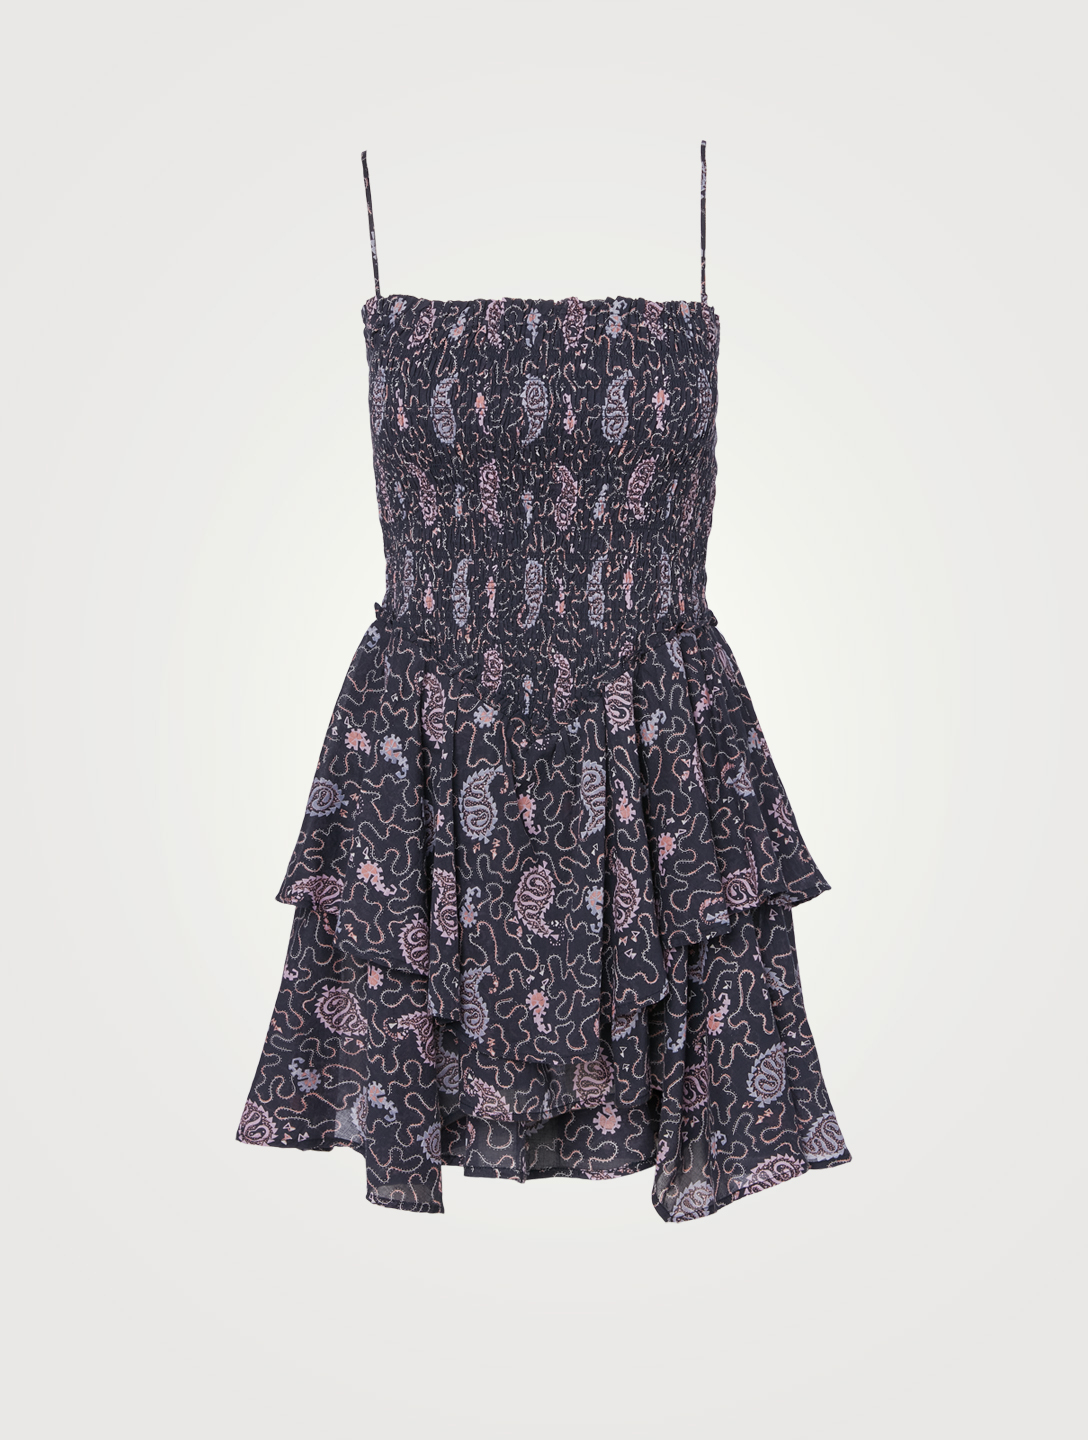 ISABEL MARANT ÉTOILE Anka Smocked Mini Dress In Paisley Print Women's Blue